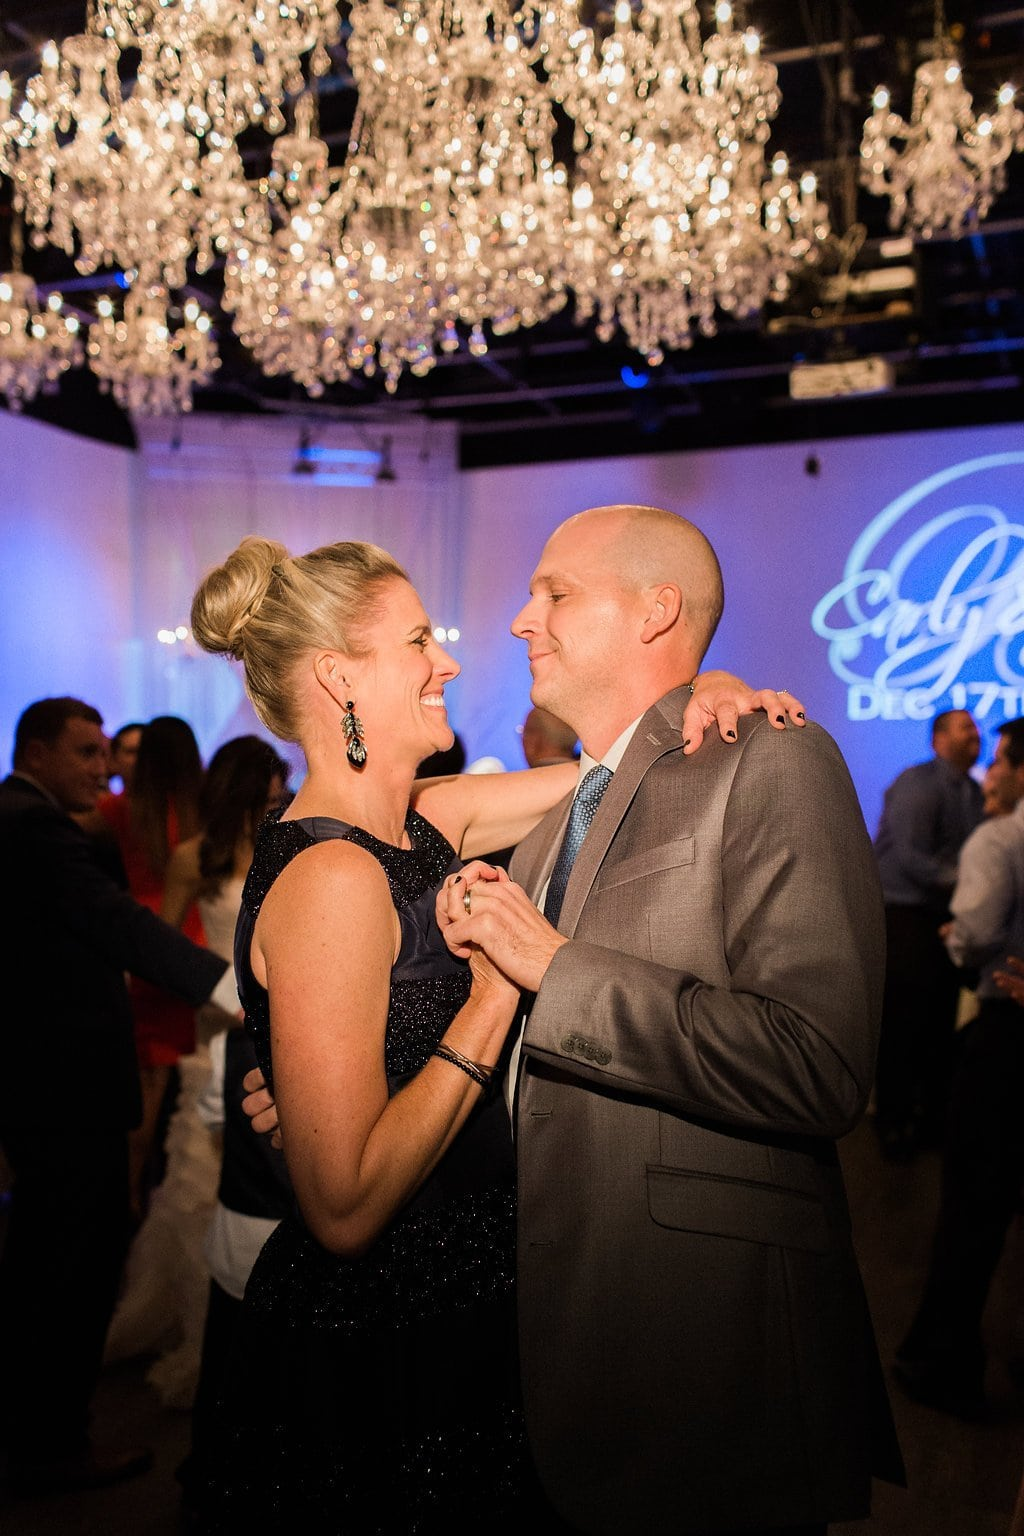 Guests on the dance floor at wedding reception - J Verno Studios Winter Wedding